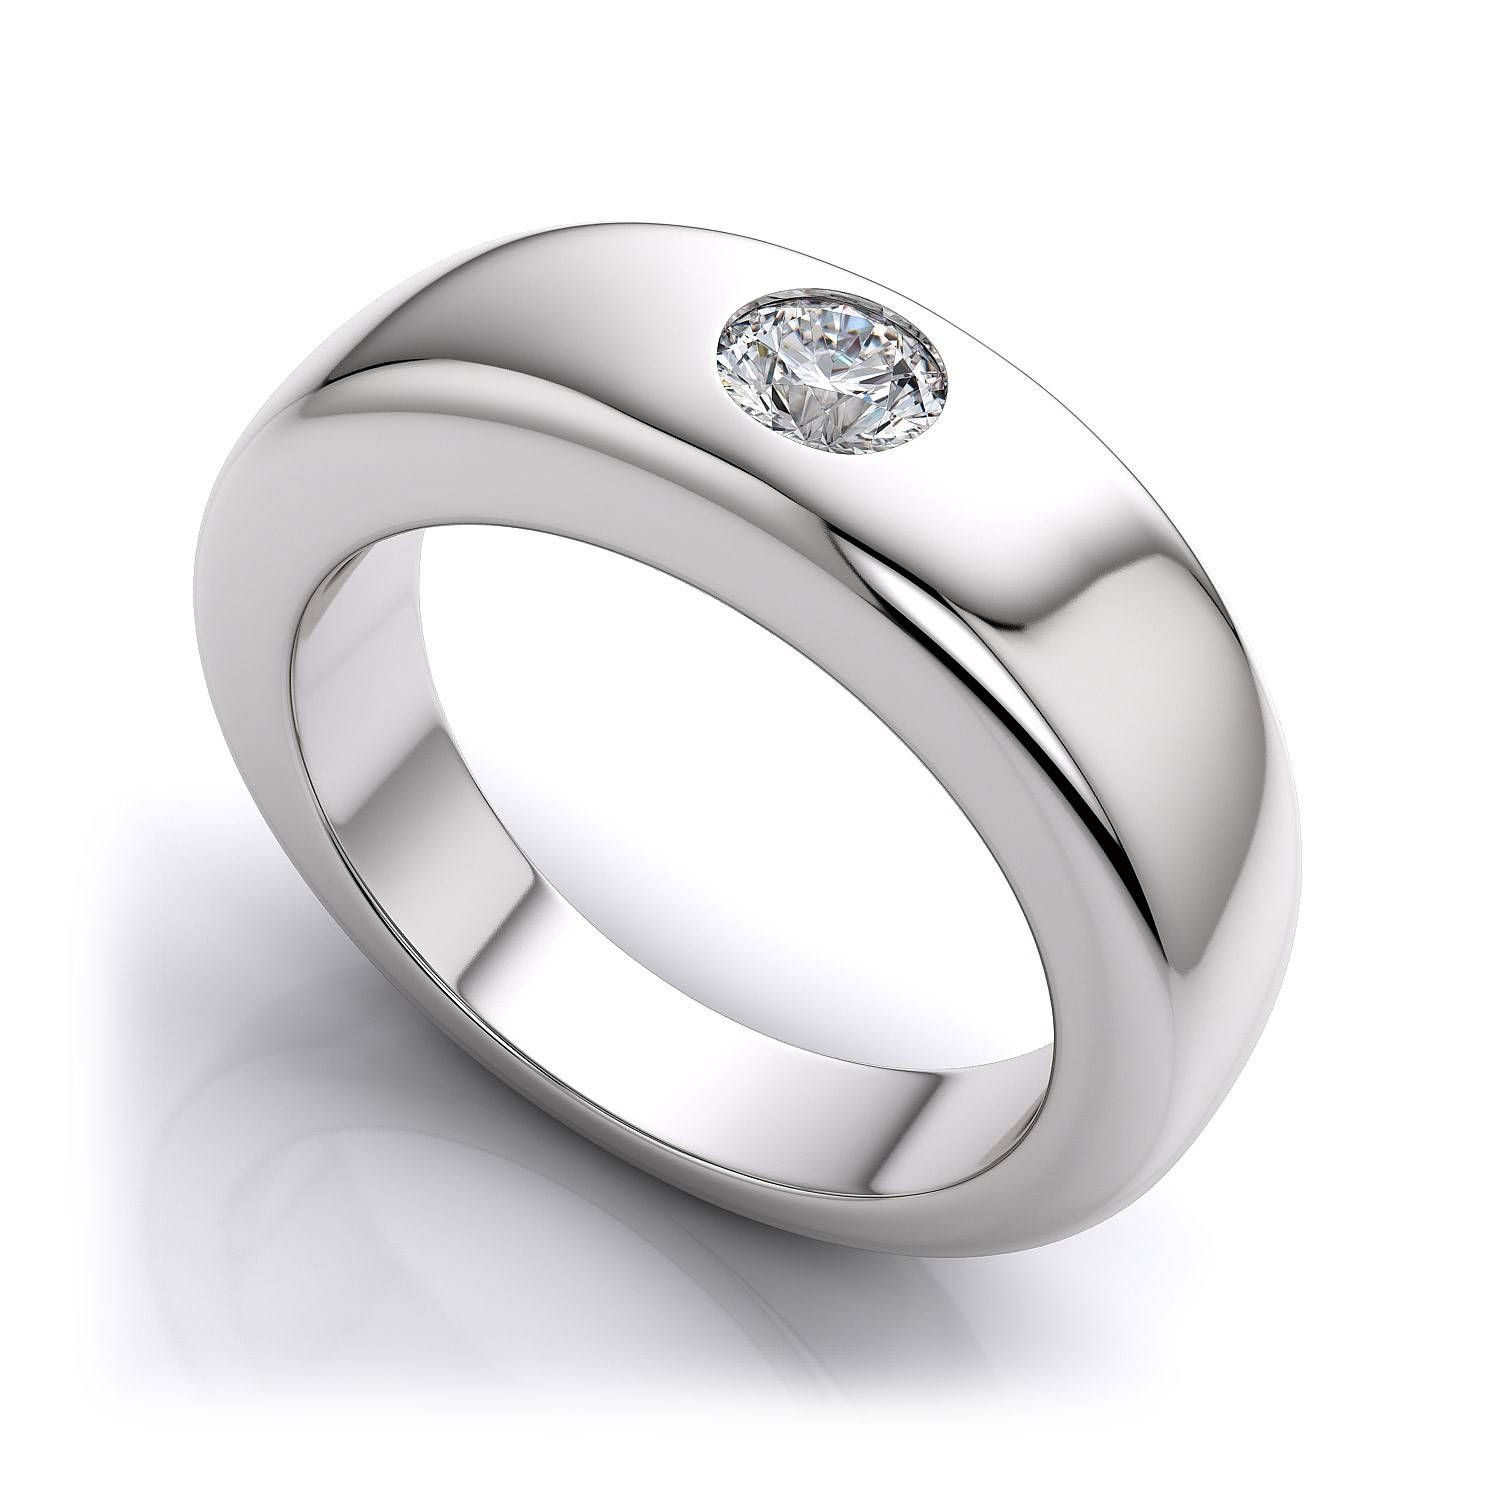 Wedding Rings : Unique Wedding Bands Can You Wear Platinum And Pertaining To Most Current Unique Anniversary Rings For Her (View 22 of 25)